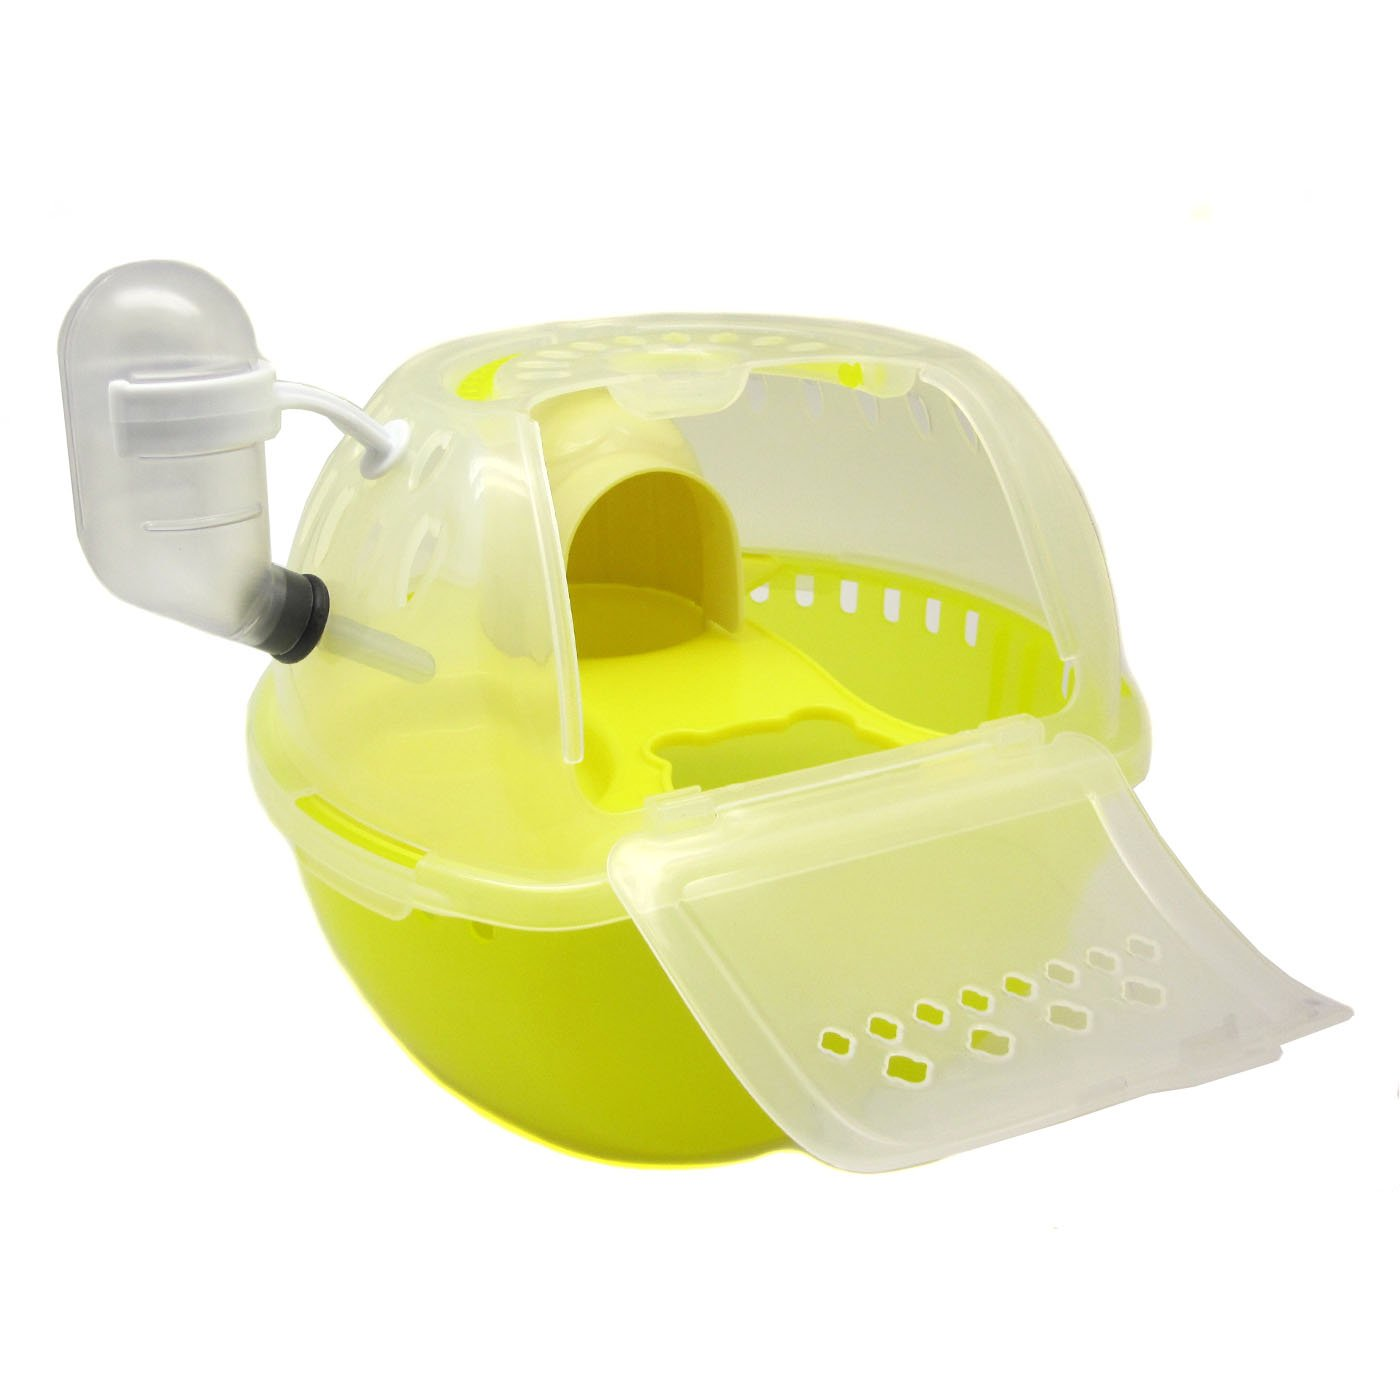 Alfie Pet by Petoga Couture - Travi Travel Carrier Vacation House for Small Animals like Dwarf Hamster and Mouse - Color Yellow by Alfie (Image #1)